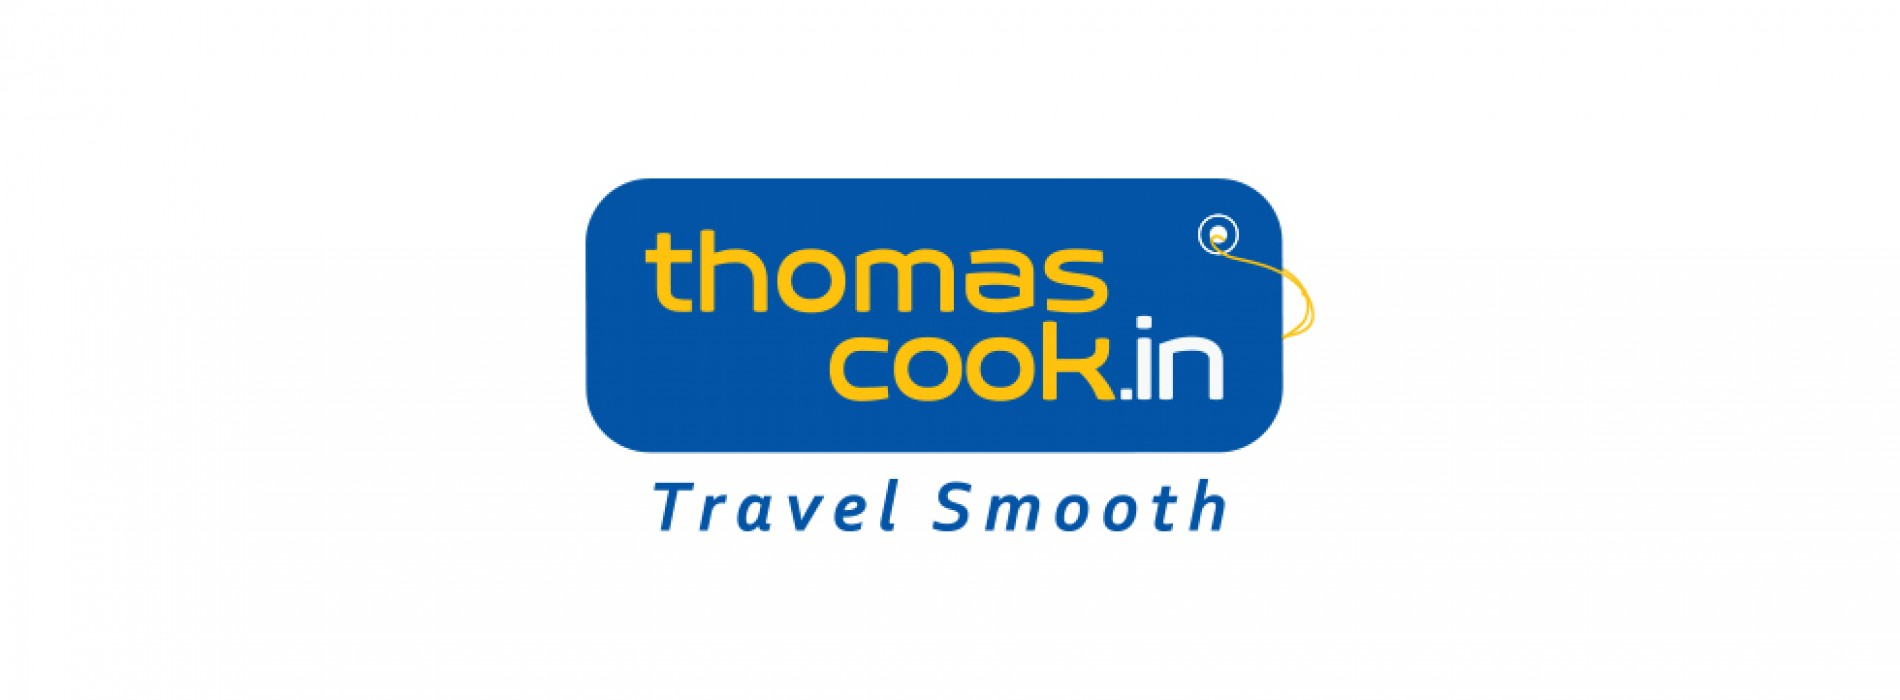 Thomas Cook (India) Limited announces strong Results for the Quarter ended June 30, 2017